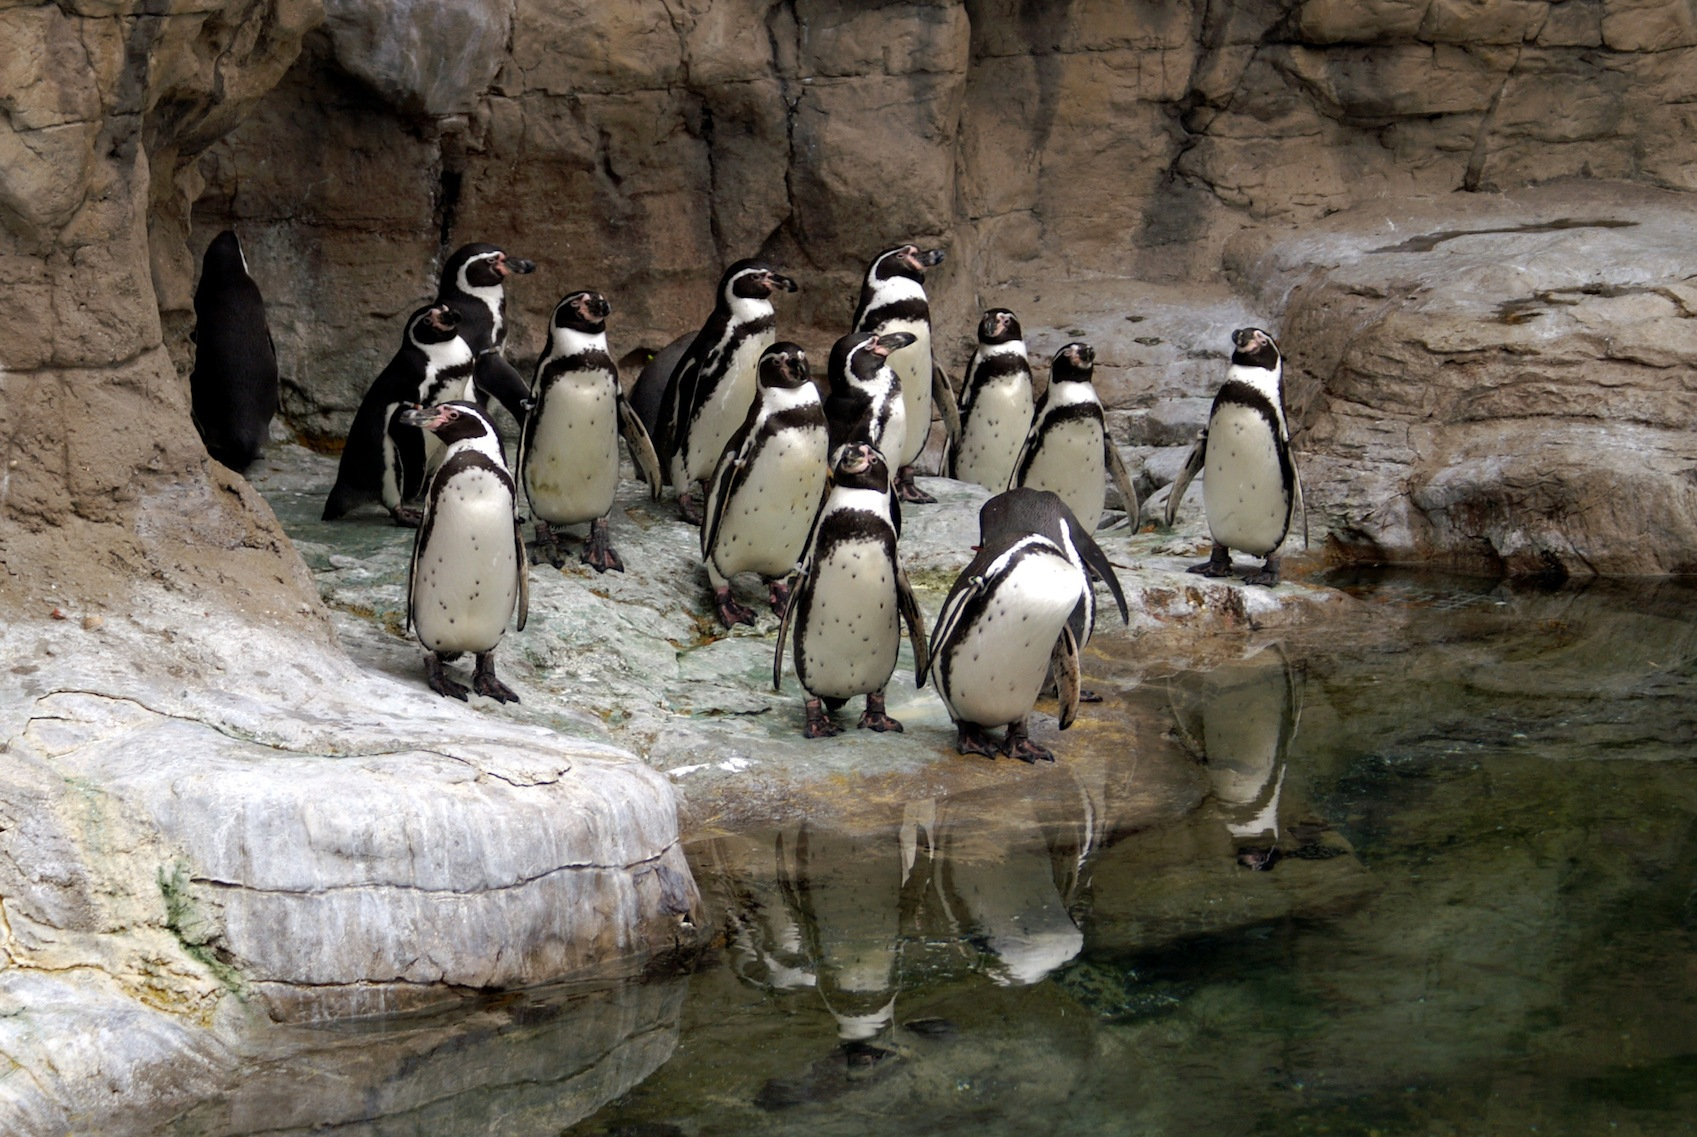 These Are the Best Zoos You Can Visit in America